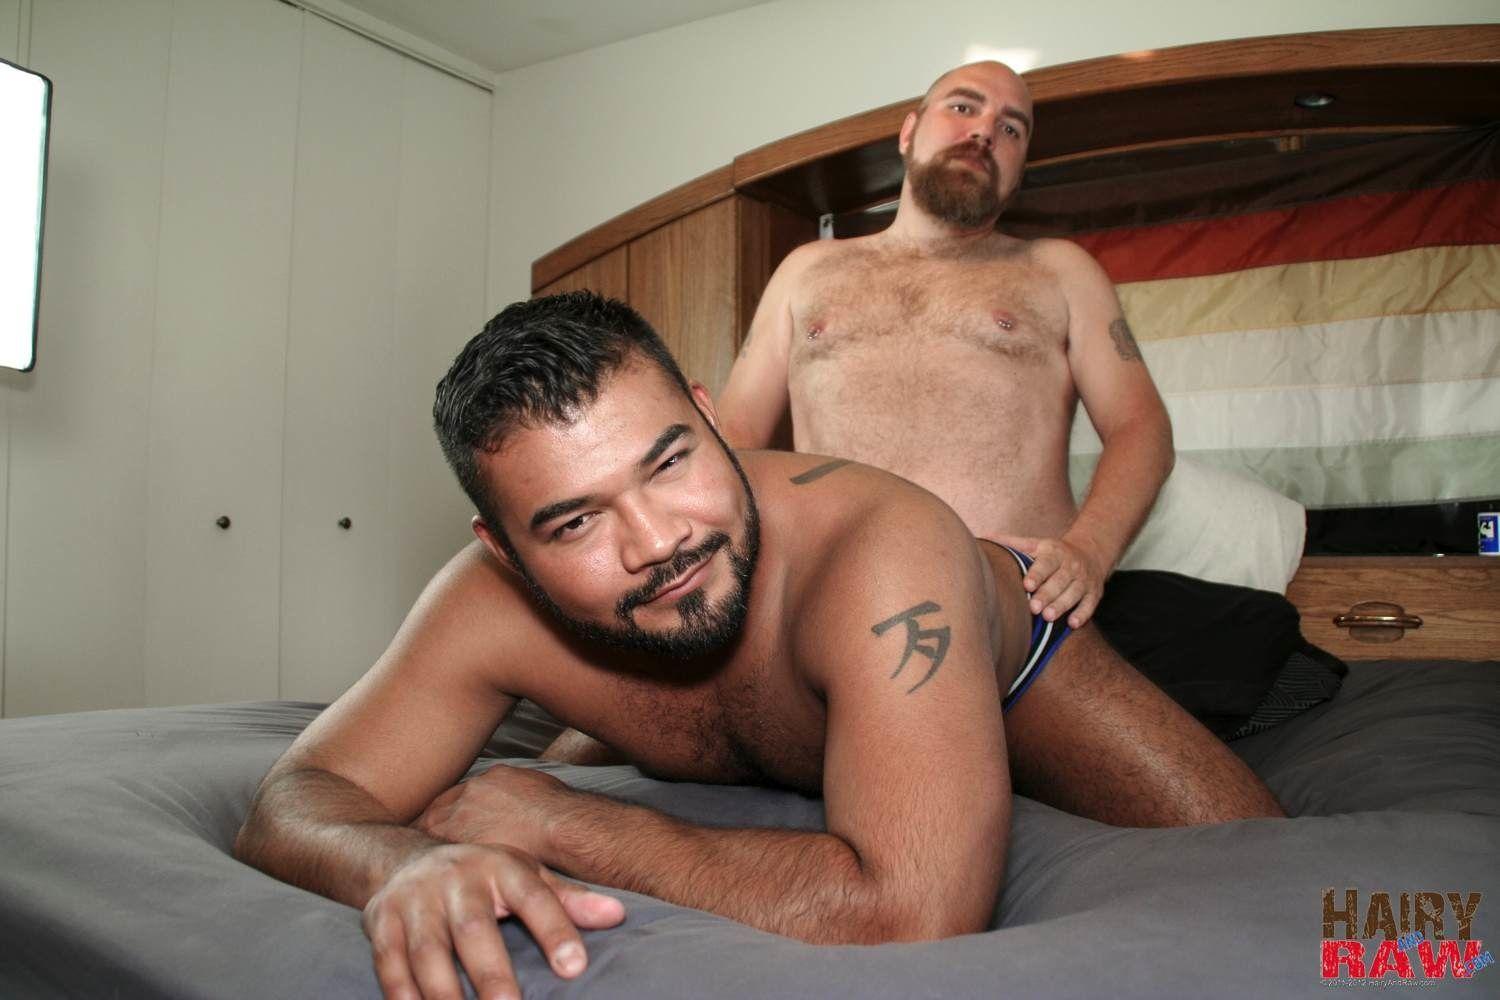 Hairy interracial sex